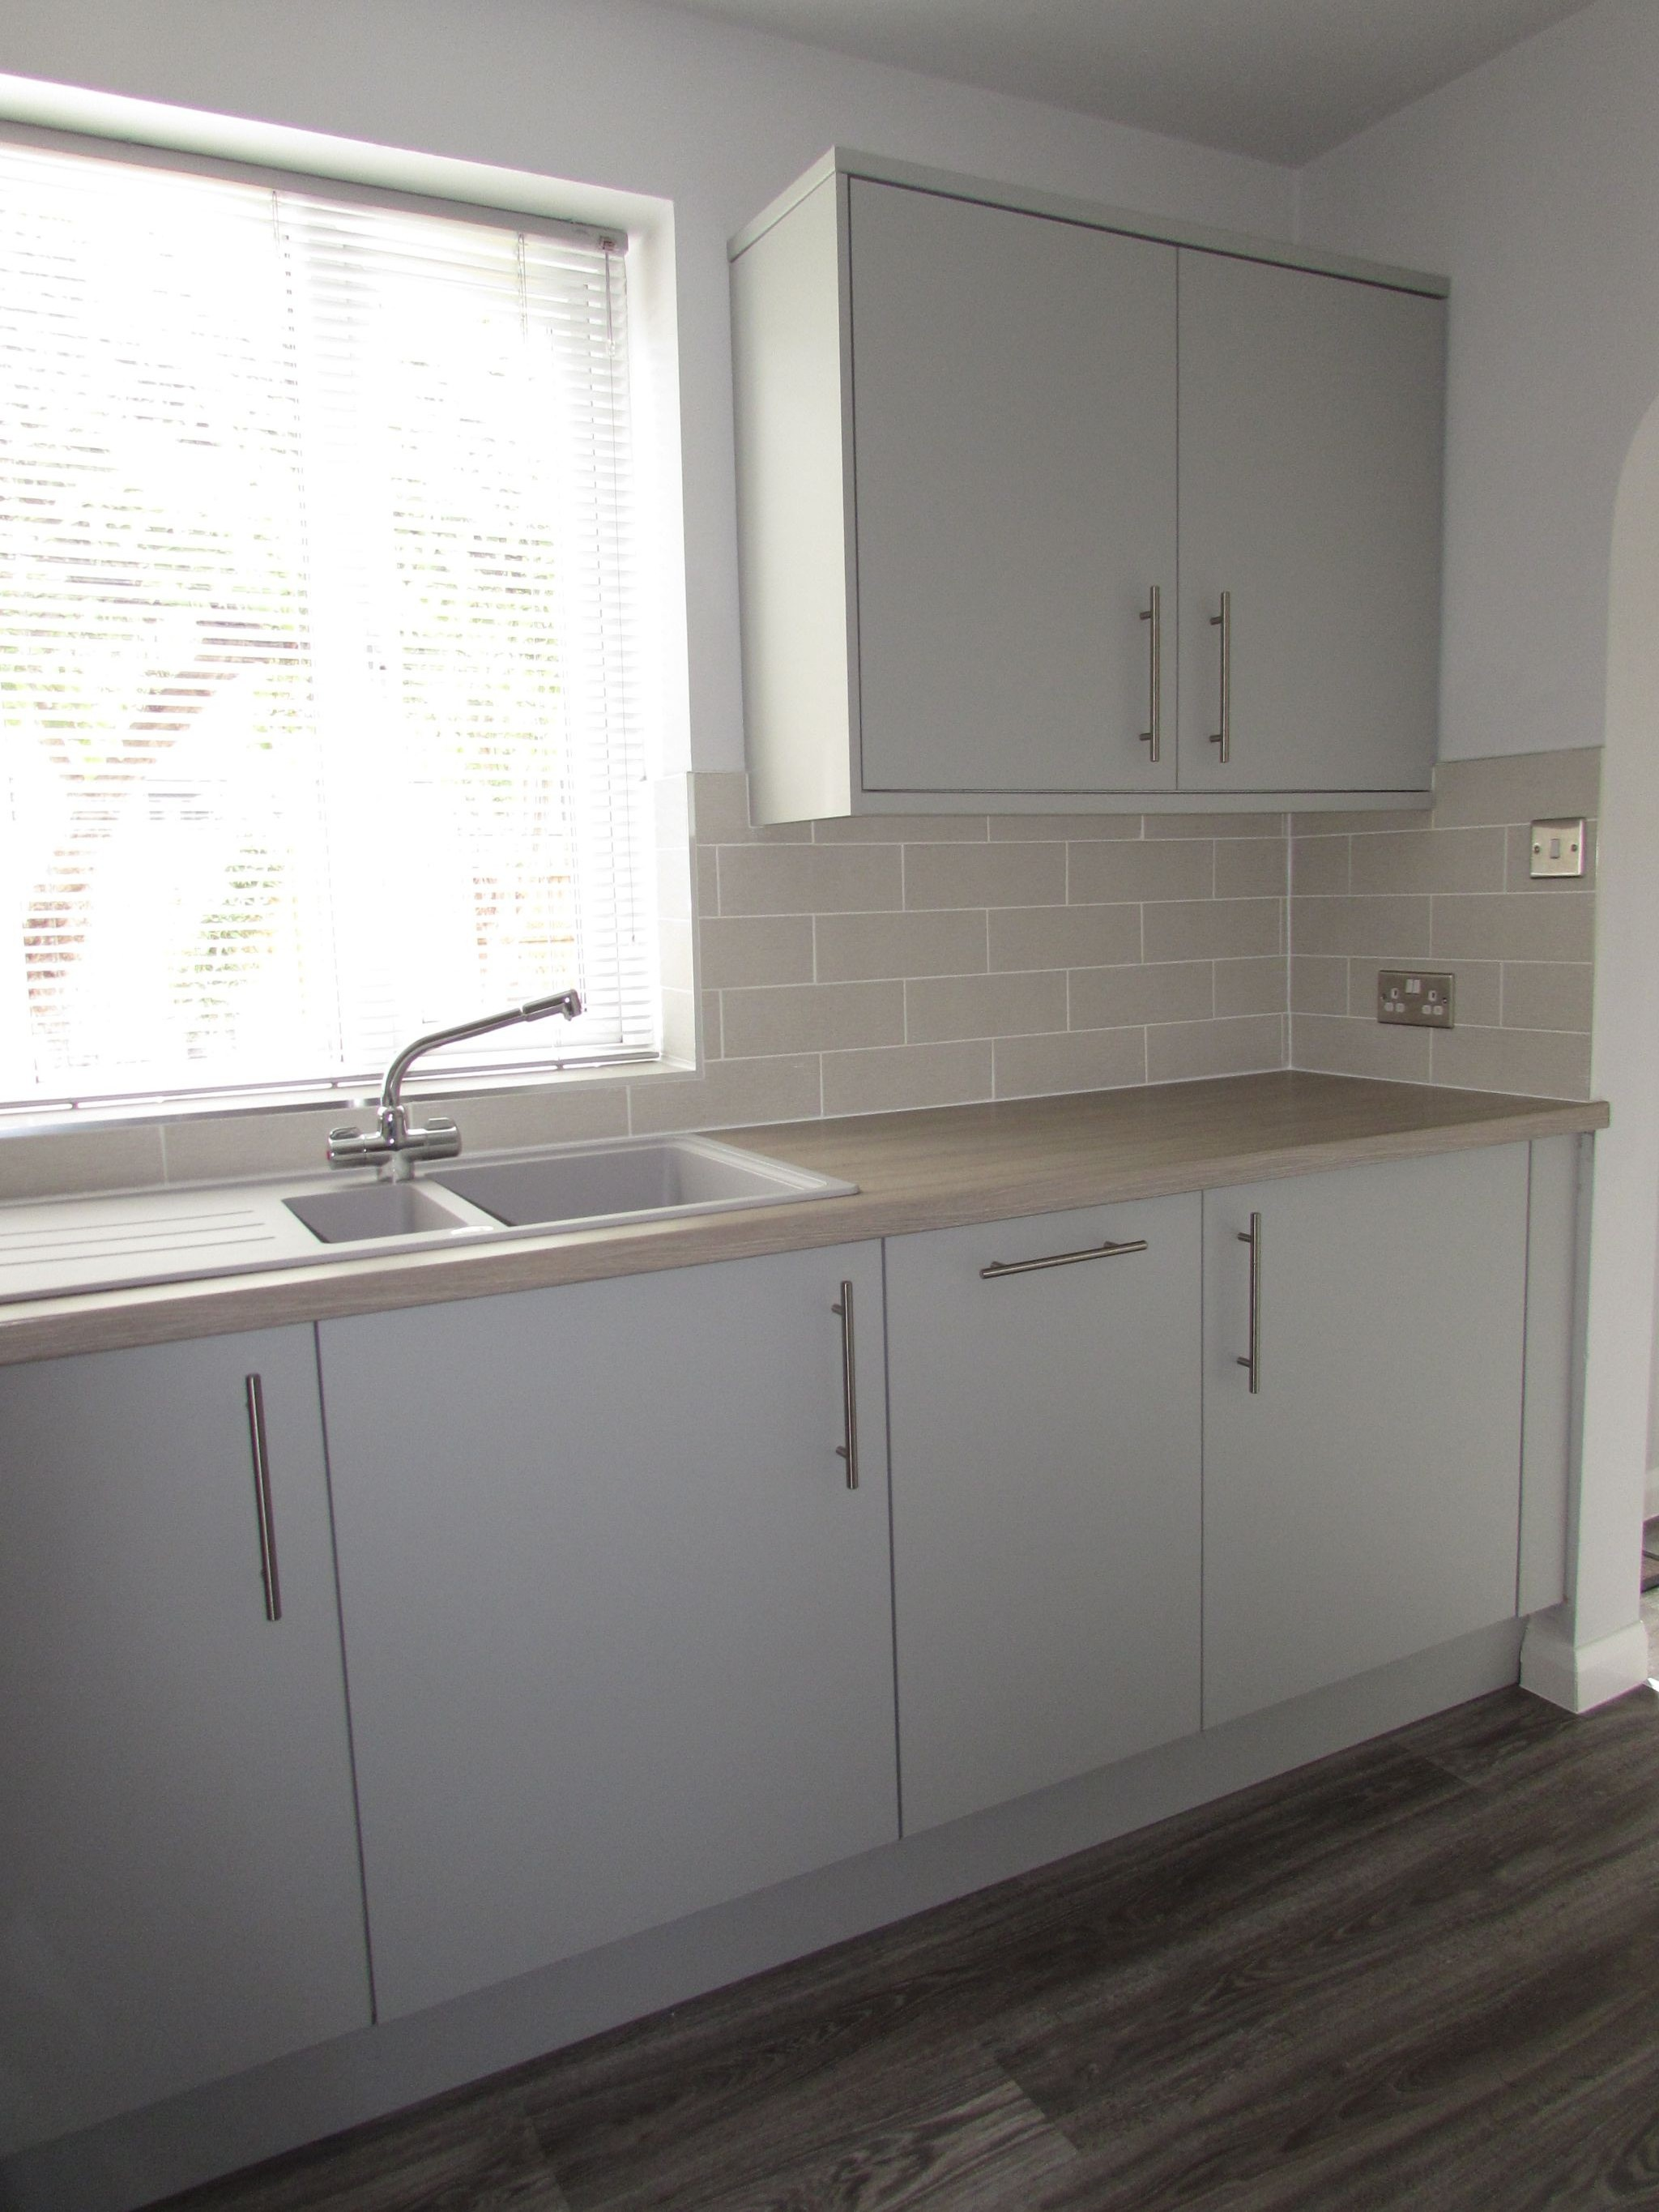 3 Bedroom Mid Terraced House For Sale - Kitchen